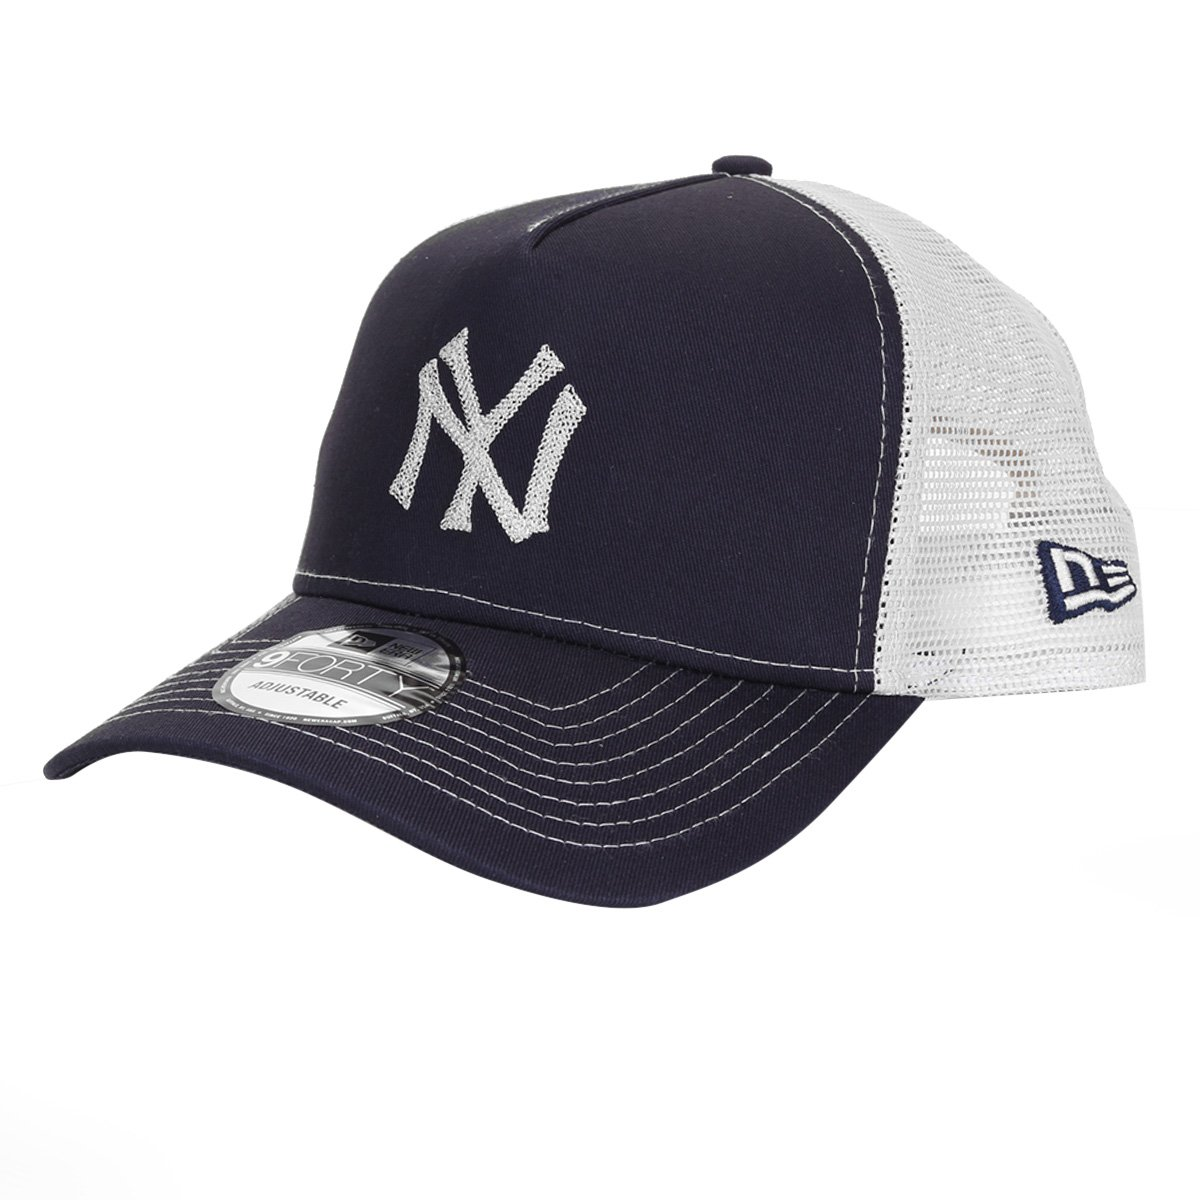 Boné New Era MLB New York Yankees Aba Curva Snapback Masculino